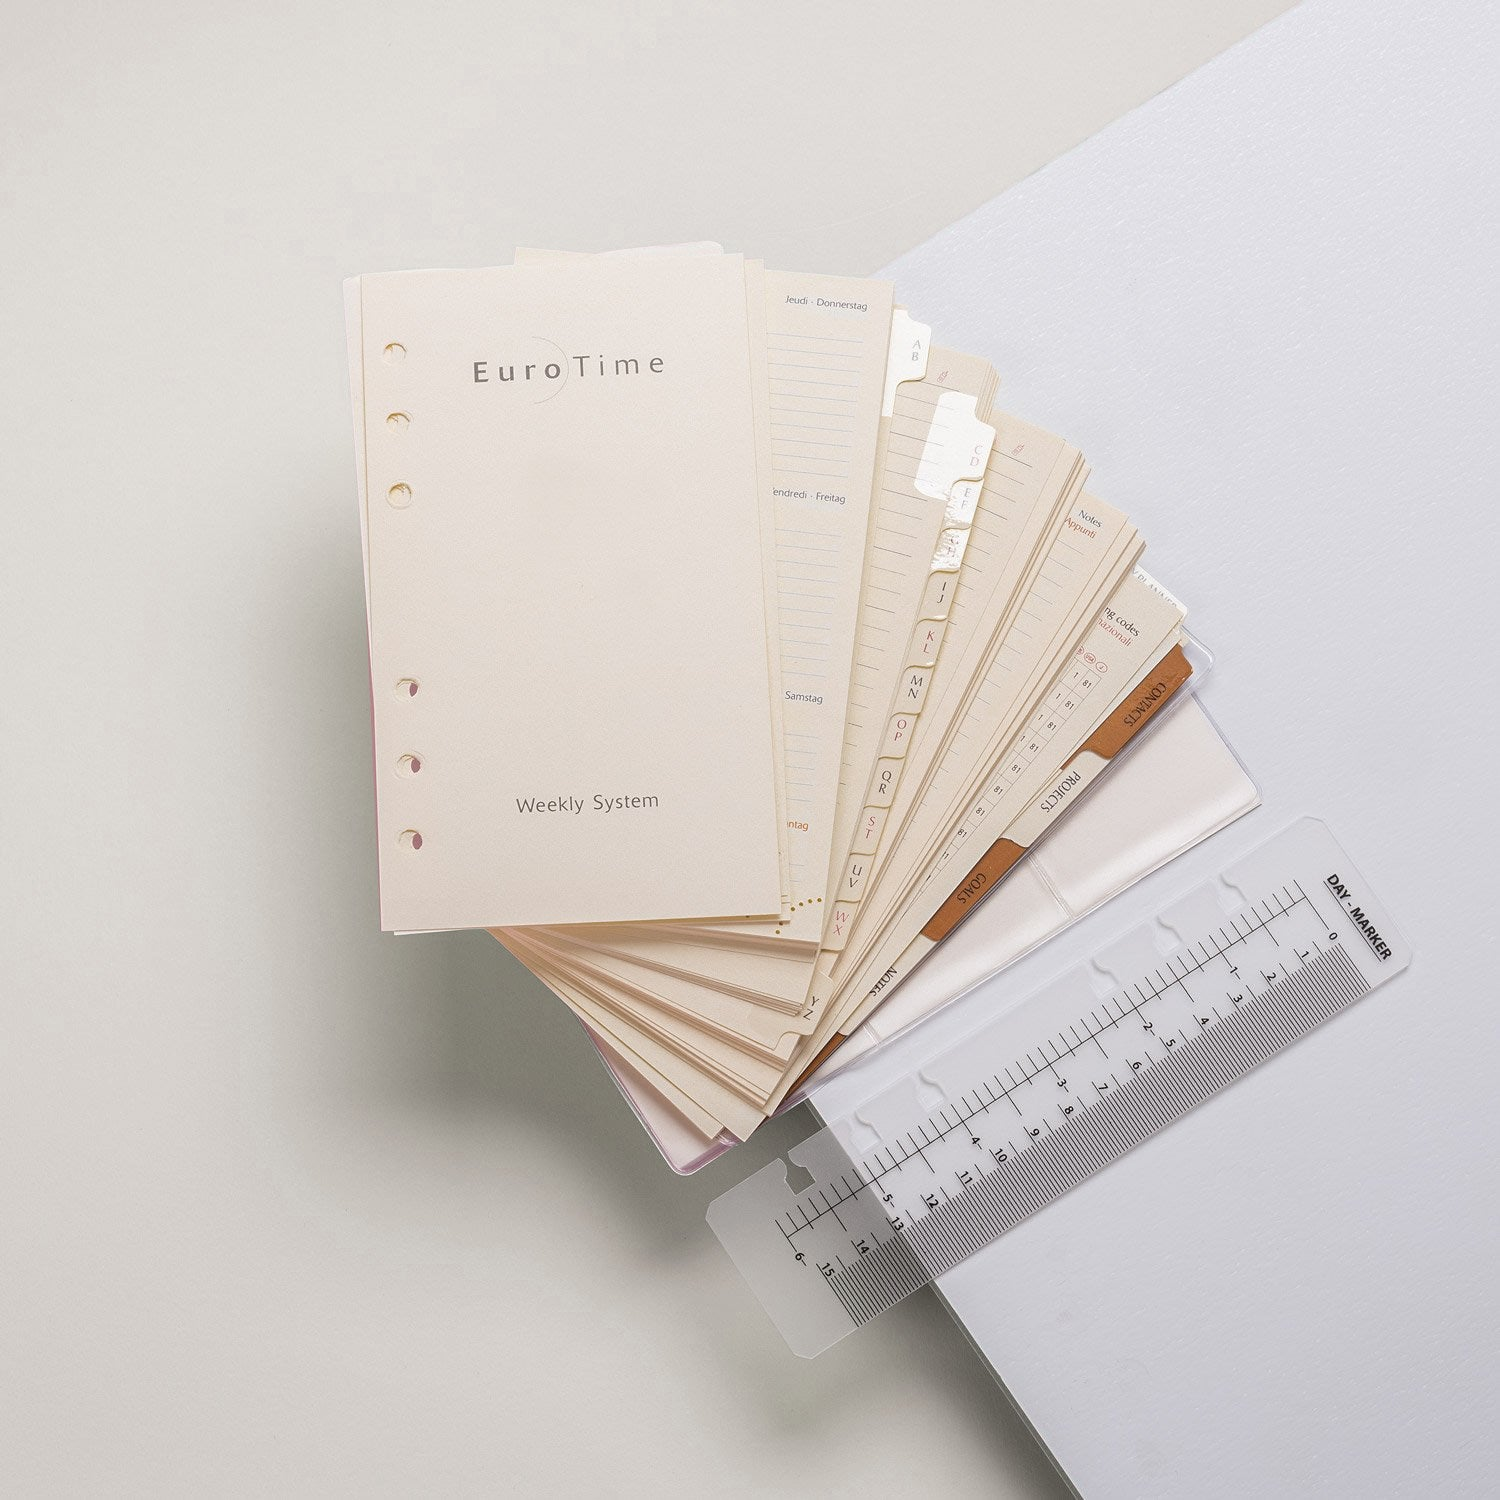 Calendar and accessories are part of the ANTORINI ring diaries